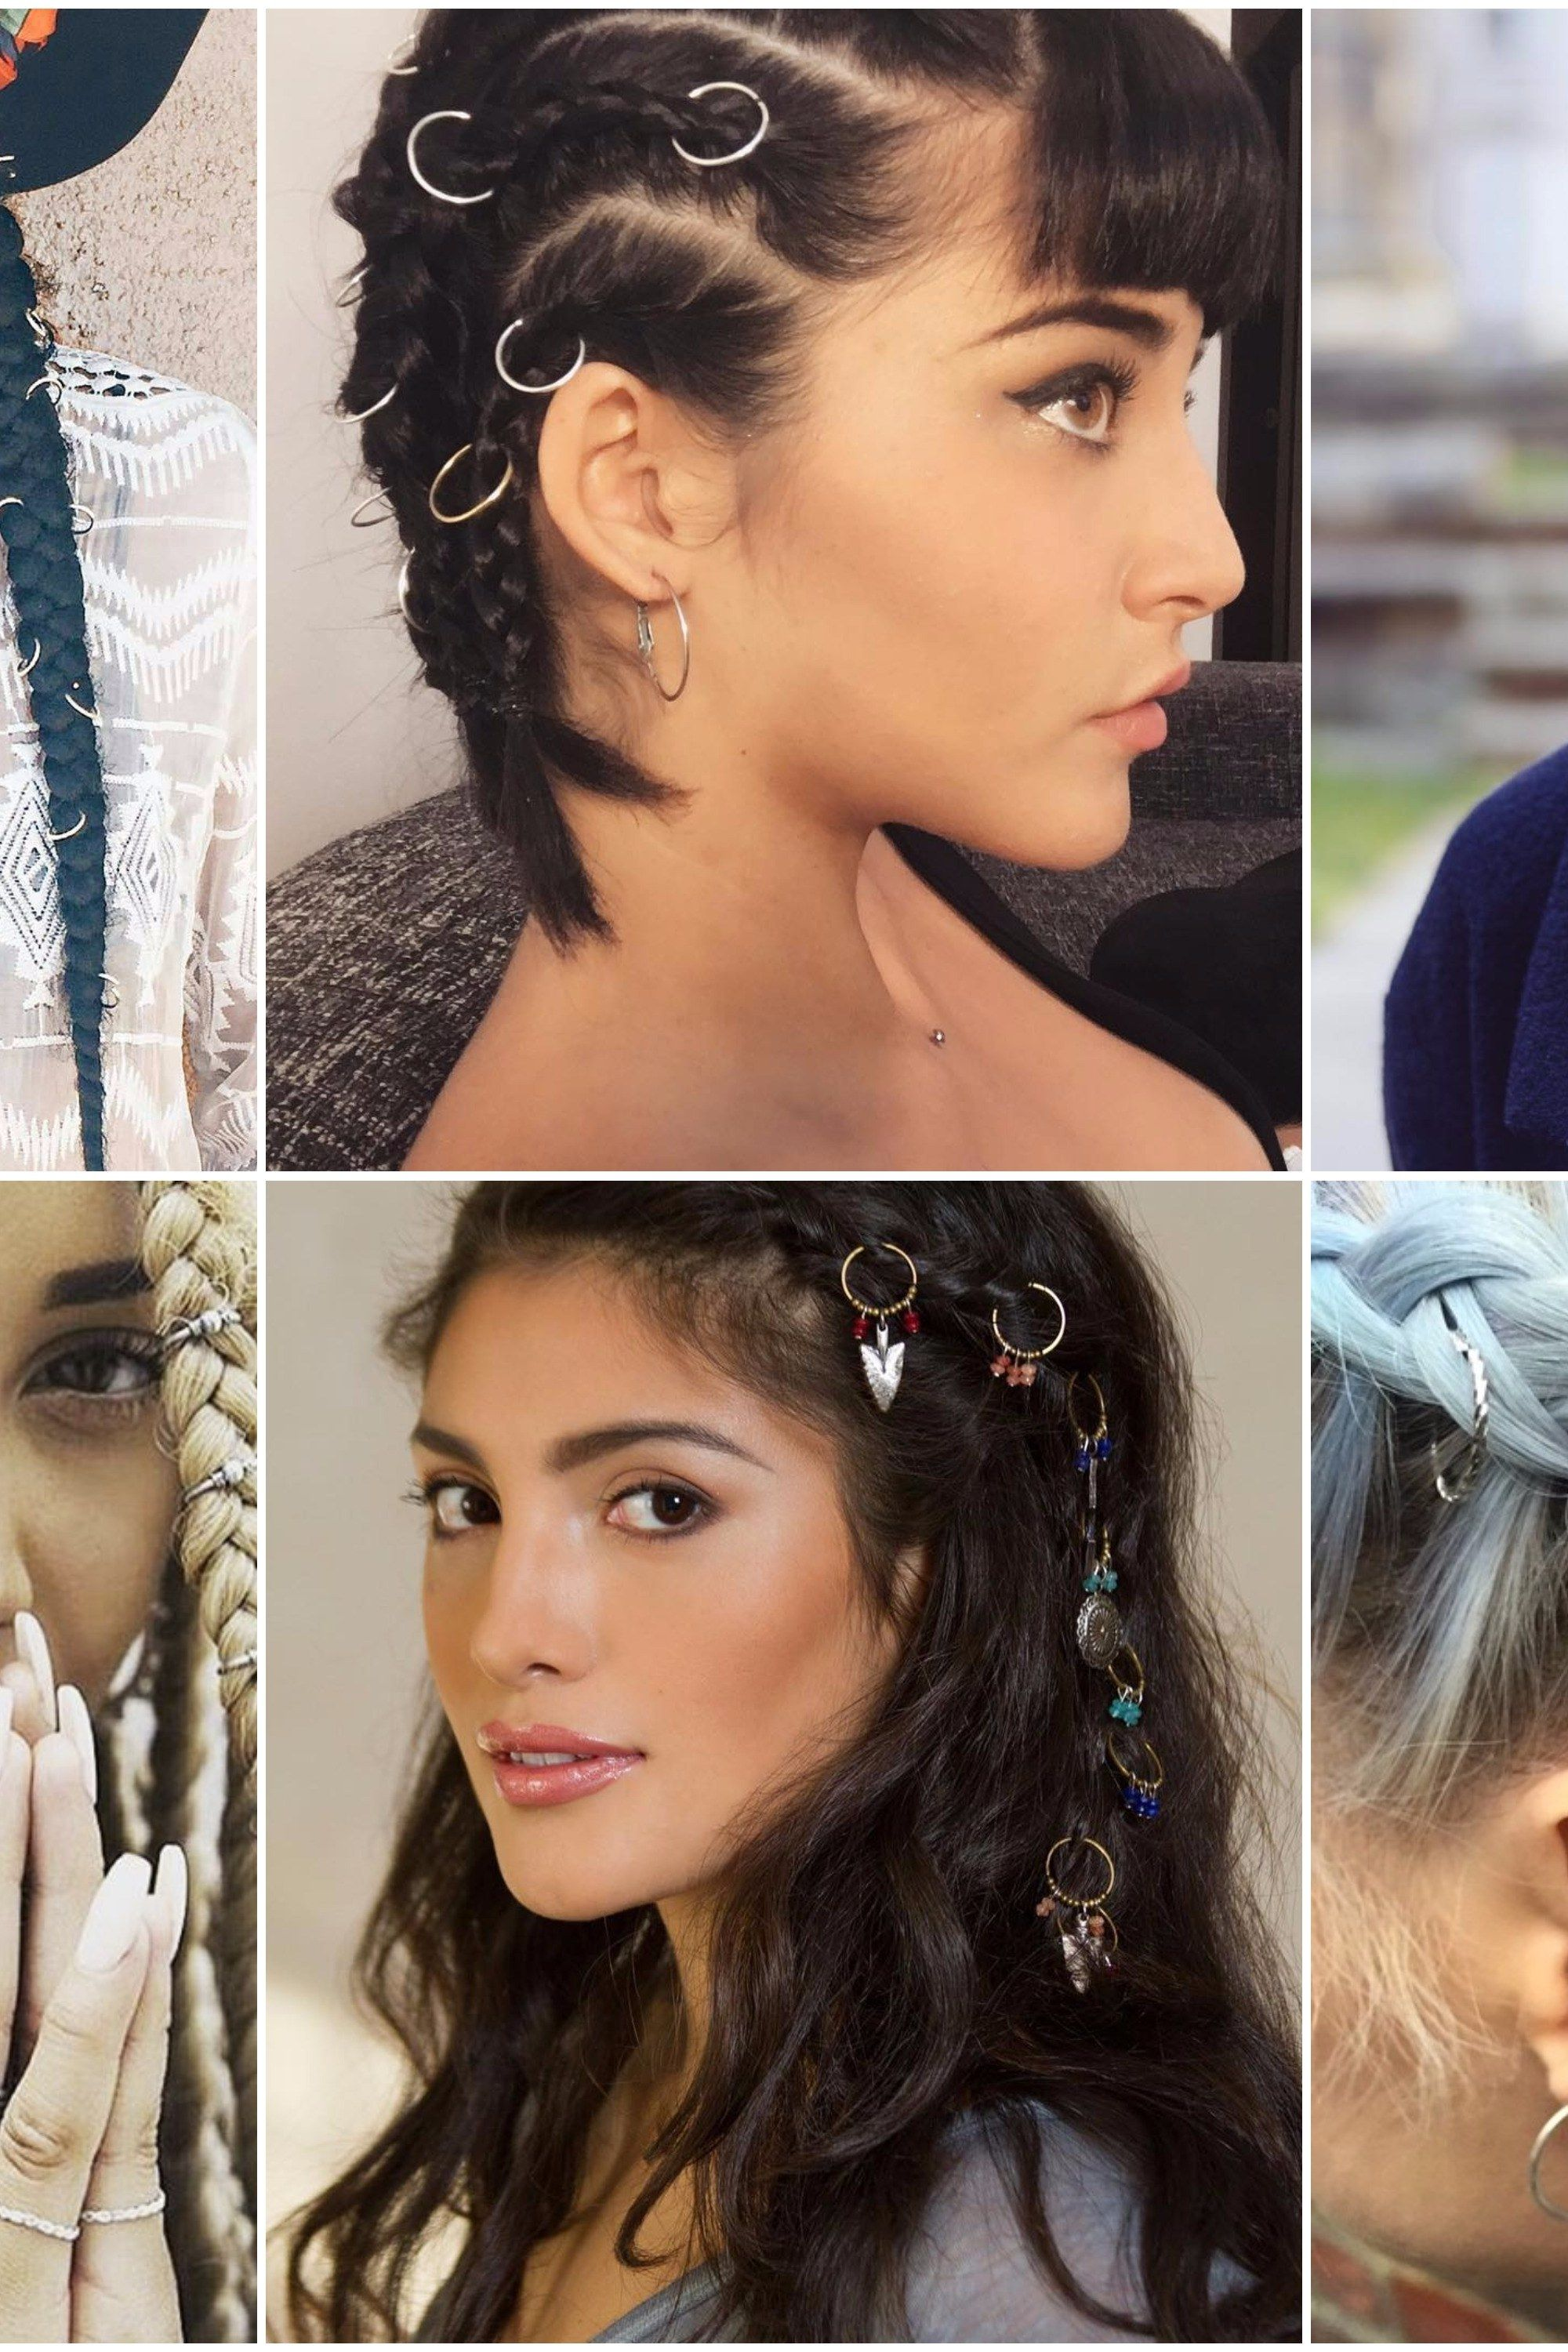 20 of the Coolest Pierced Braid Looks to Try This Summer | Hair rings, Braids, Hair